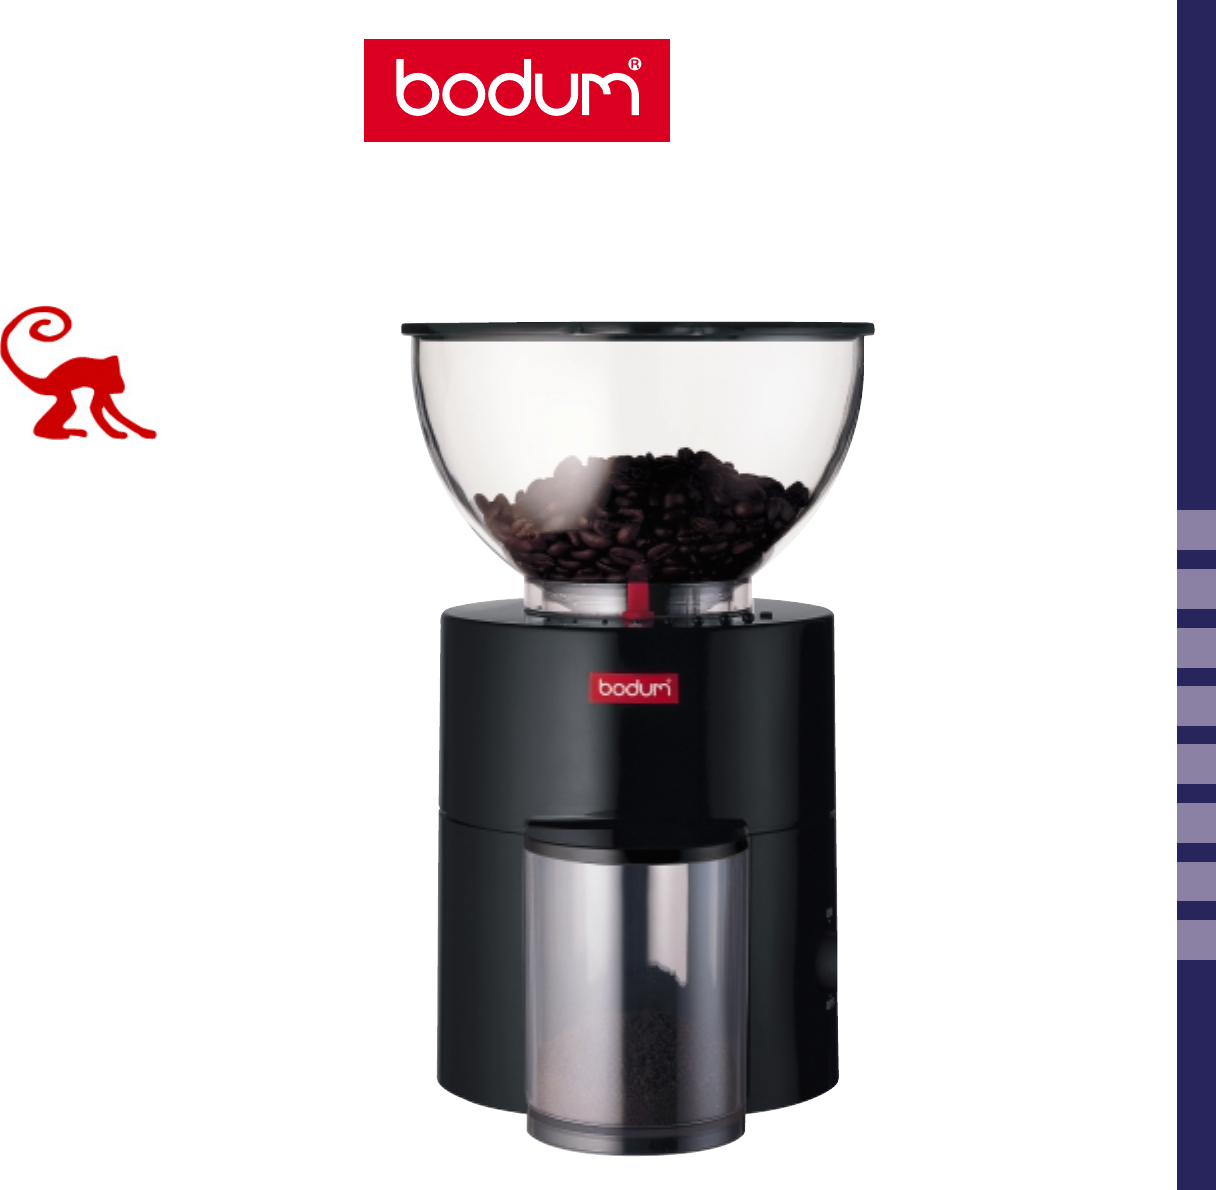 Bodum 5670 Coffee Grinder User Manual